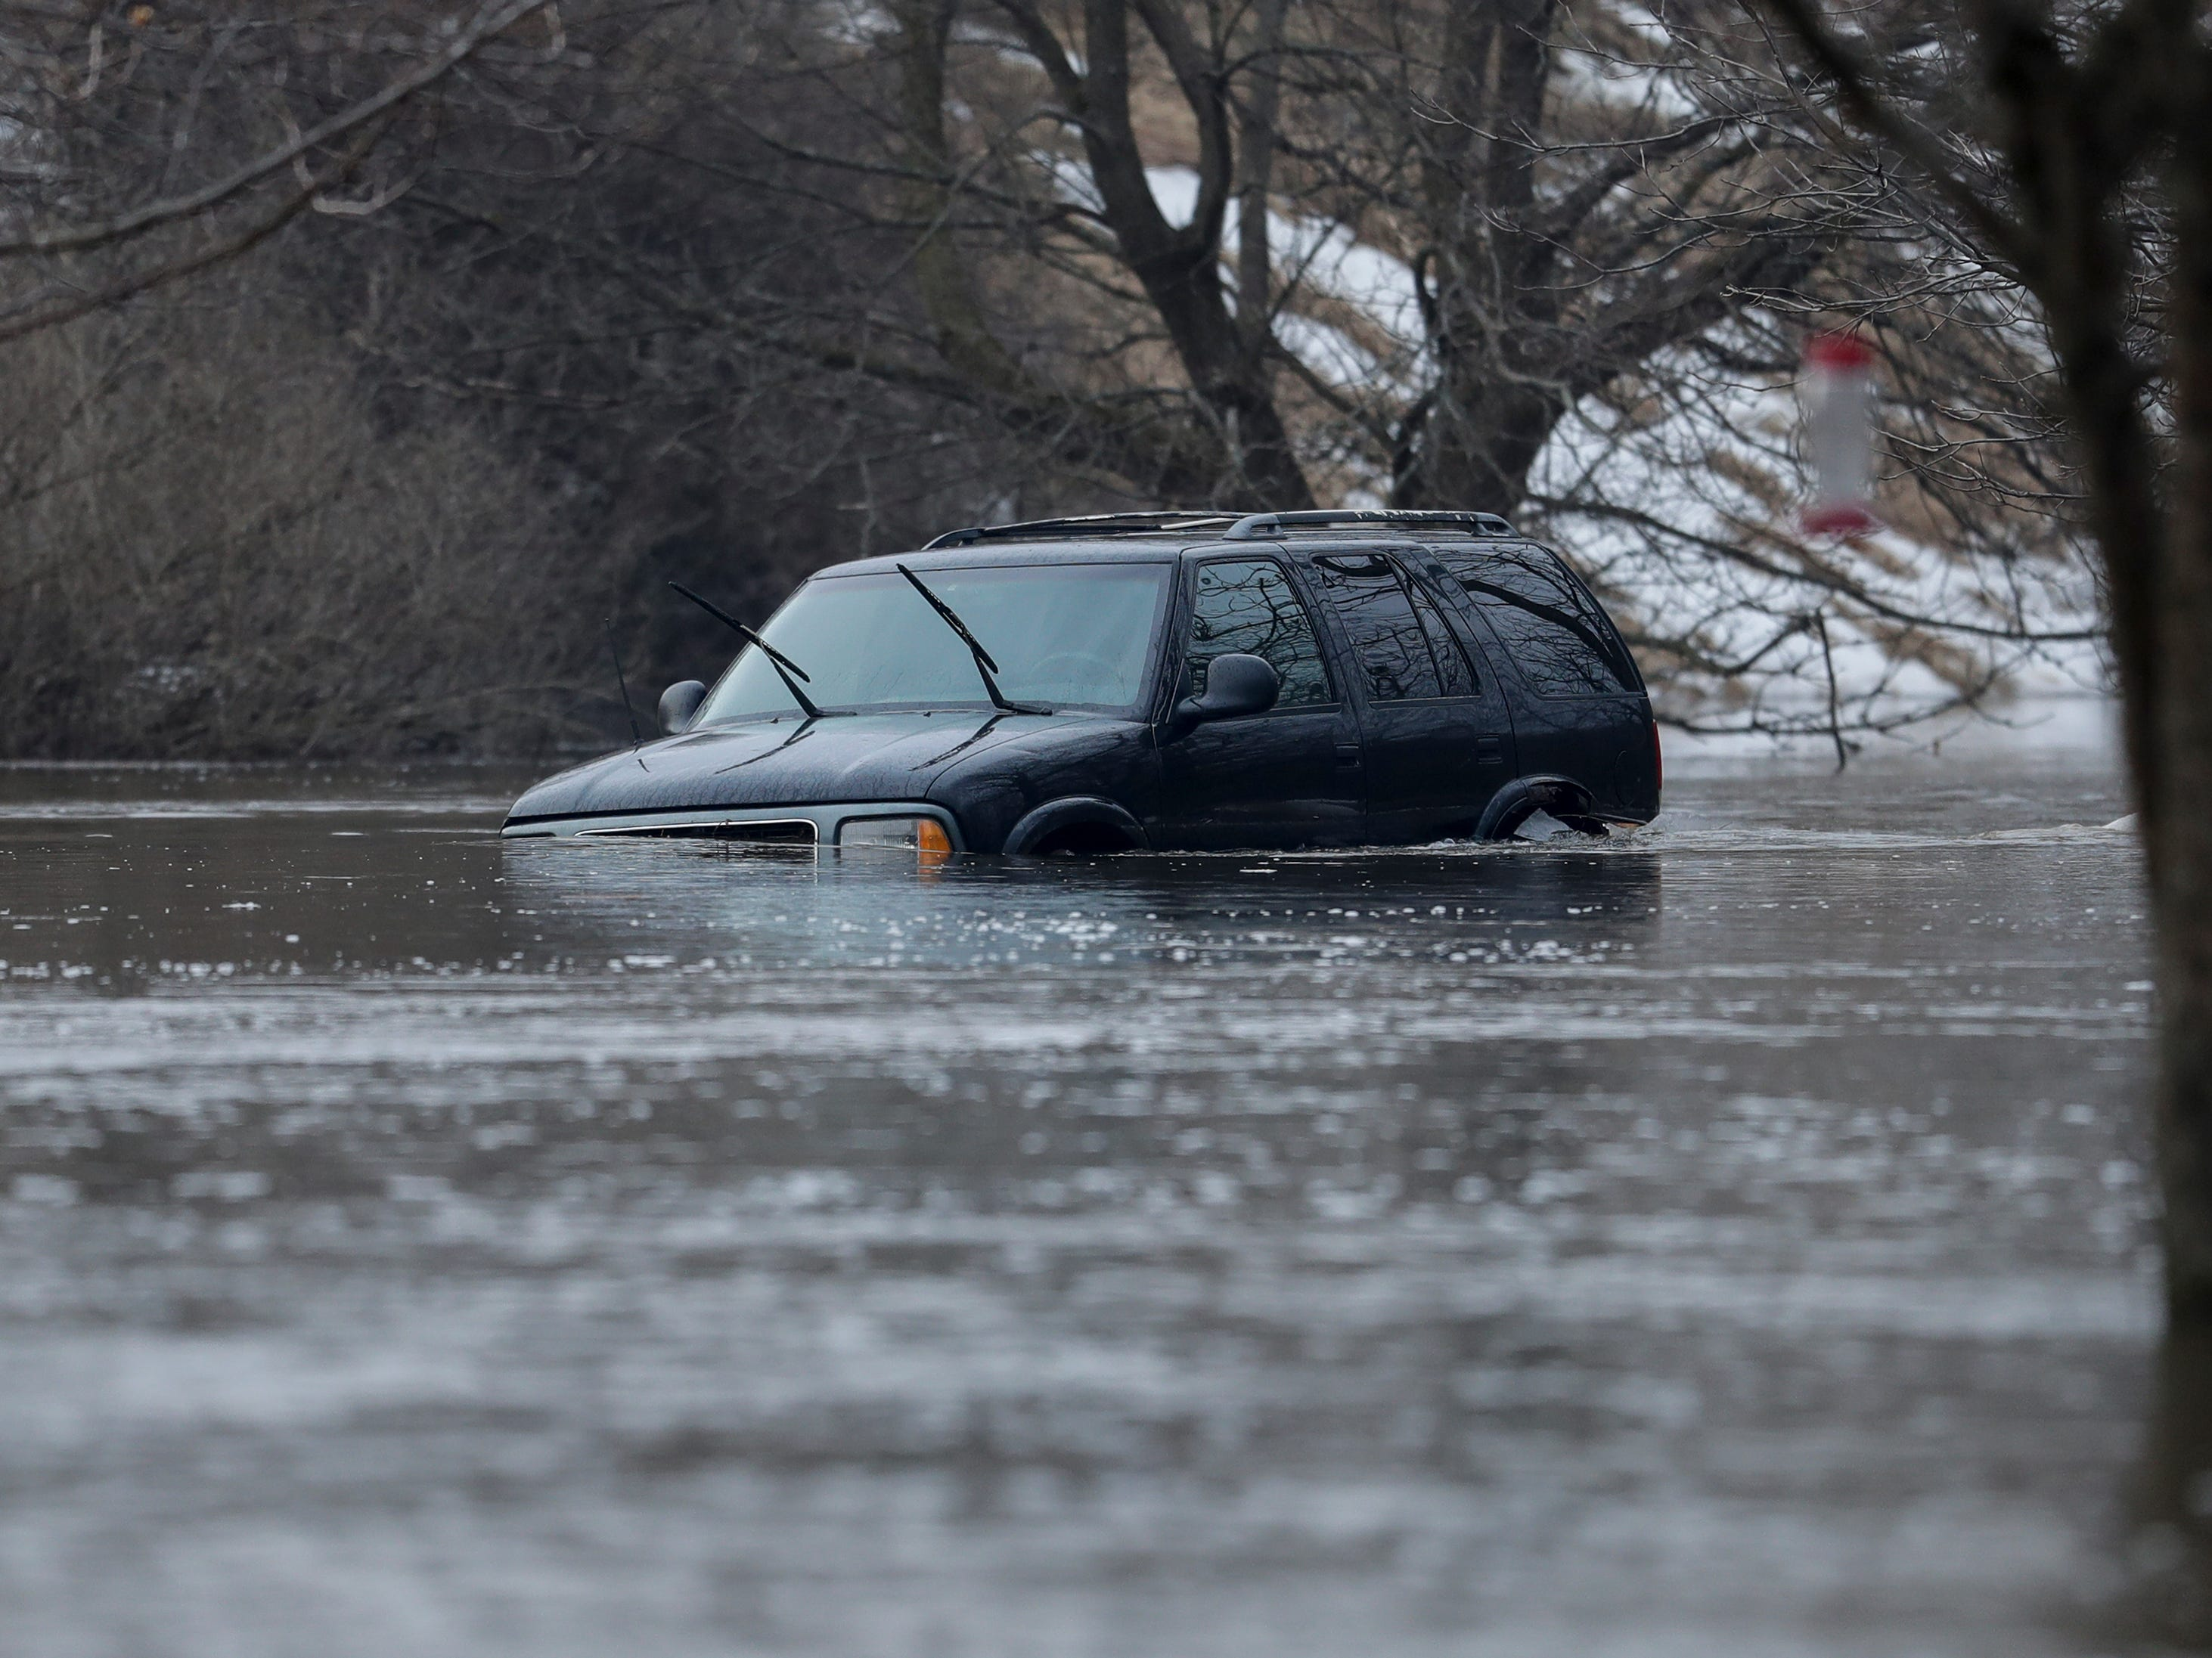 A car parked on a property on Mill Road is under water after an ice jam on the Manitowoc River causes severe flooding Wednesday, March 20, 2019, in Manitowoc, Wis. Joshua Clark/USA TODAY NETWORK-Wisconsin